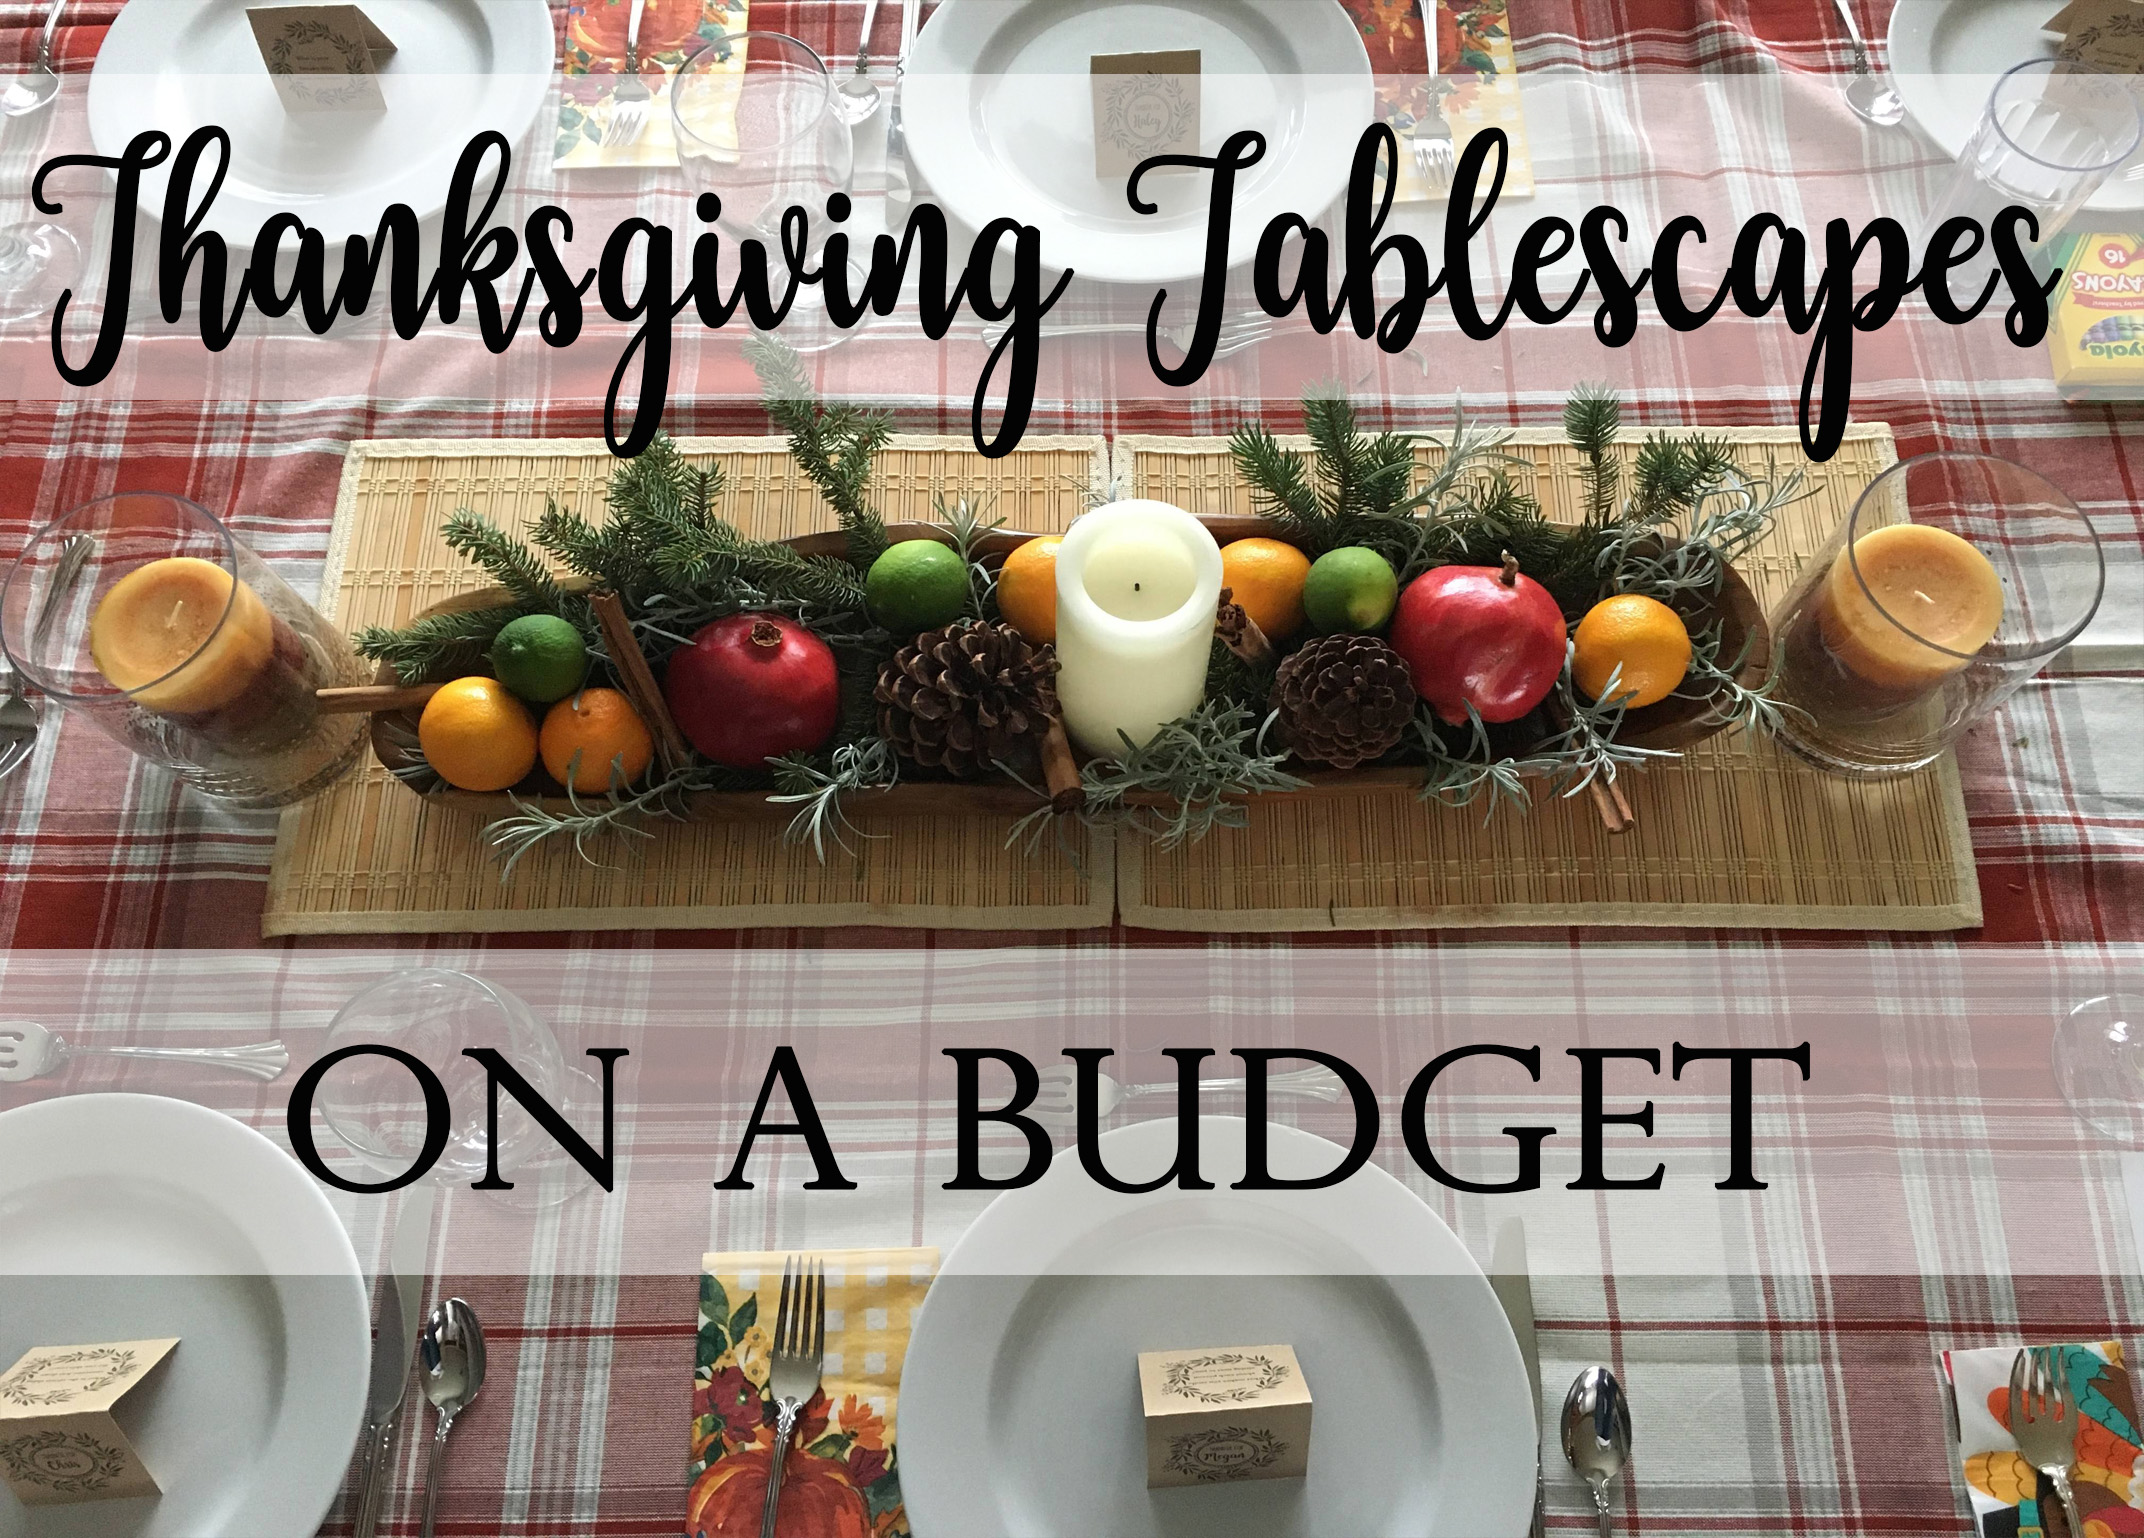 Thanksgiving on a budget